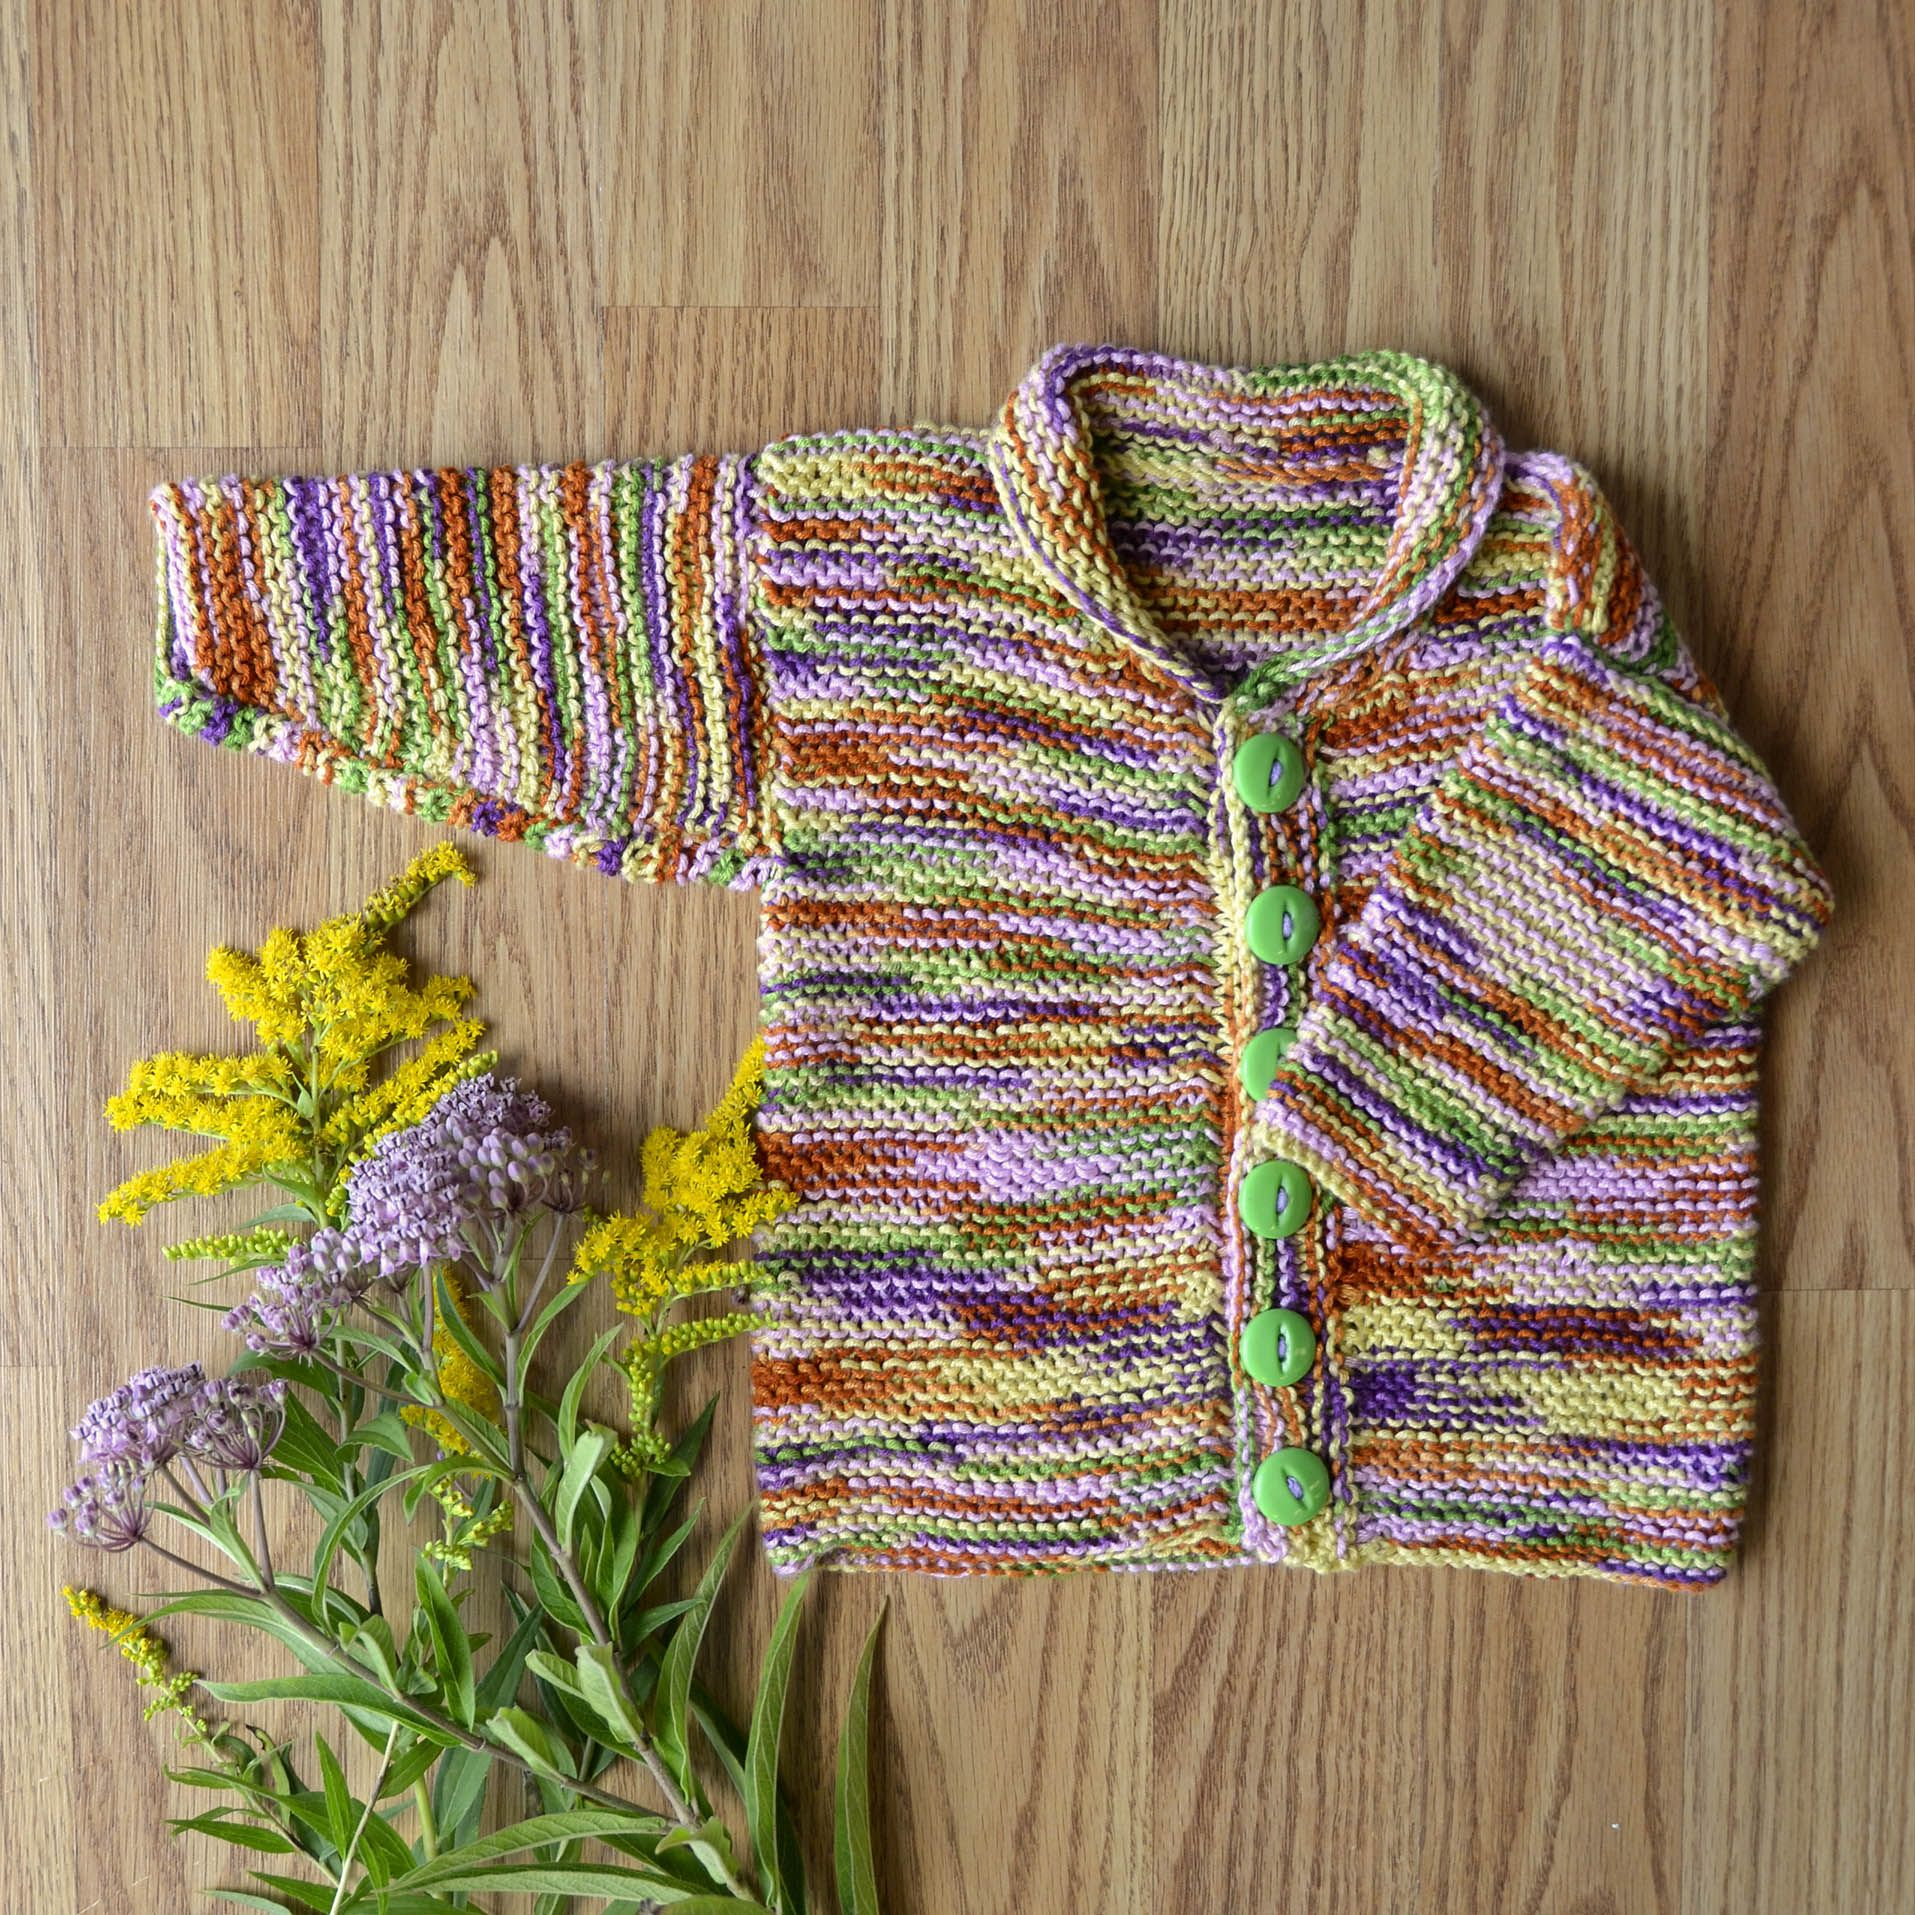 Free Pattern Friday - Easy Baby Cardi | Baby sweater ...